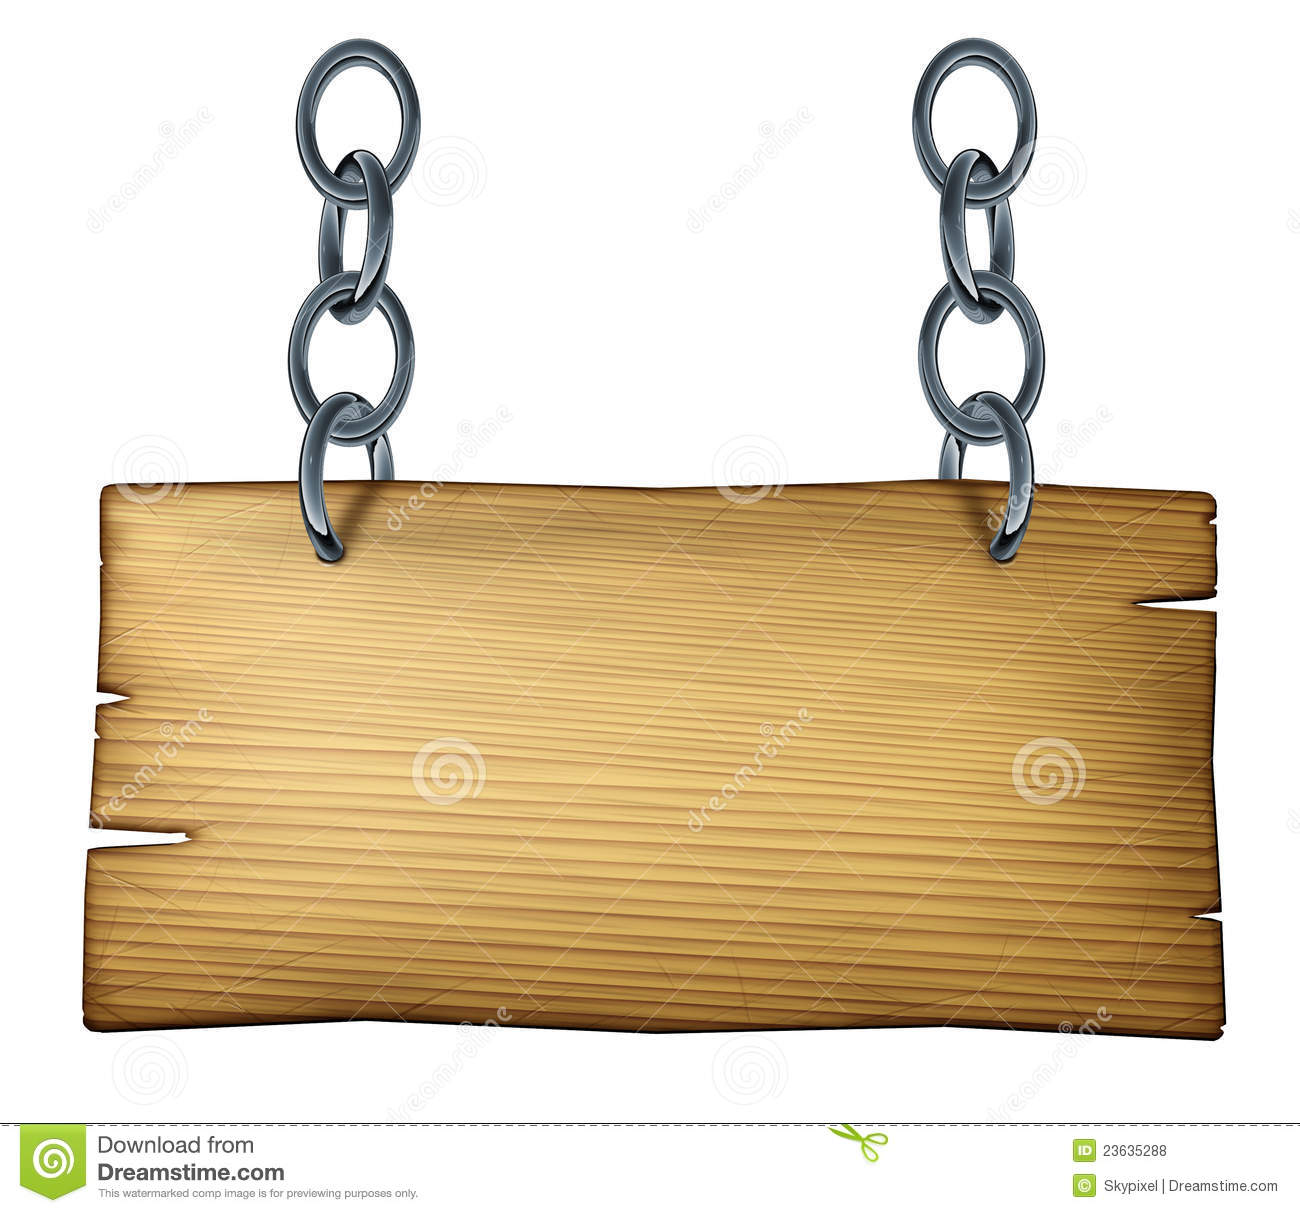 Clip Art Wooden Board Clipart  Clipart Suggest. Ny State Corporate Search Graphic Design Bid. Postage Meters For Small Business. Music Programs In Schools Lyons Pest Control. Wrangler Unlimited Vs Wrangler. Pittsburgh Pa Colleges And Universities. How Do Credit Card Payments Work. Self Storage Washington D C El Monte Airport. Kia Dealers Fort Lauderdale Web Design Seo